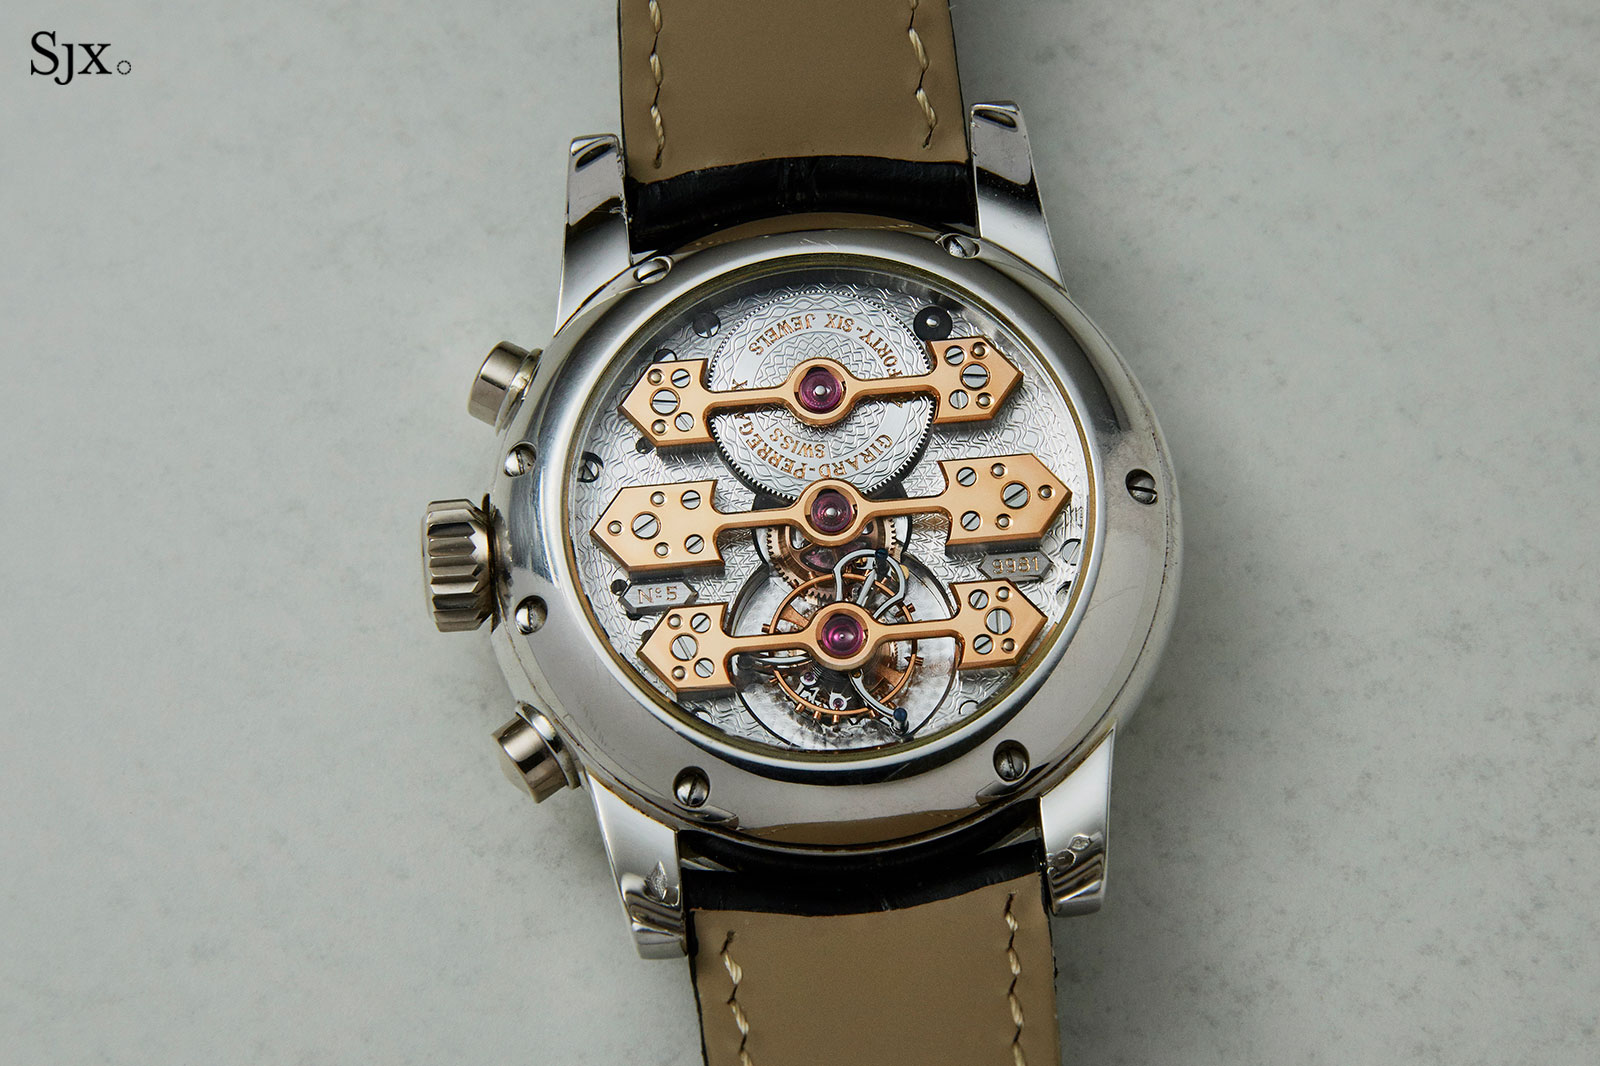 Girard-Perregaux Chronograph Gold Bridges Tourbillon 3